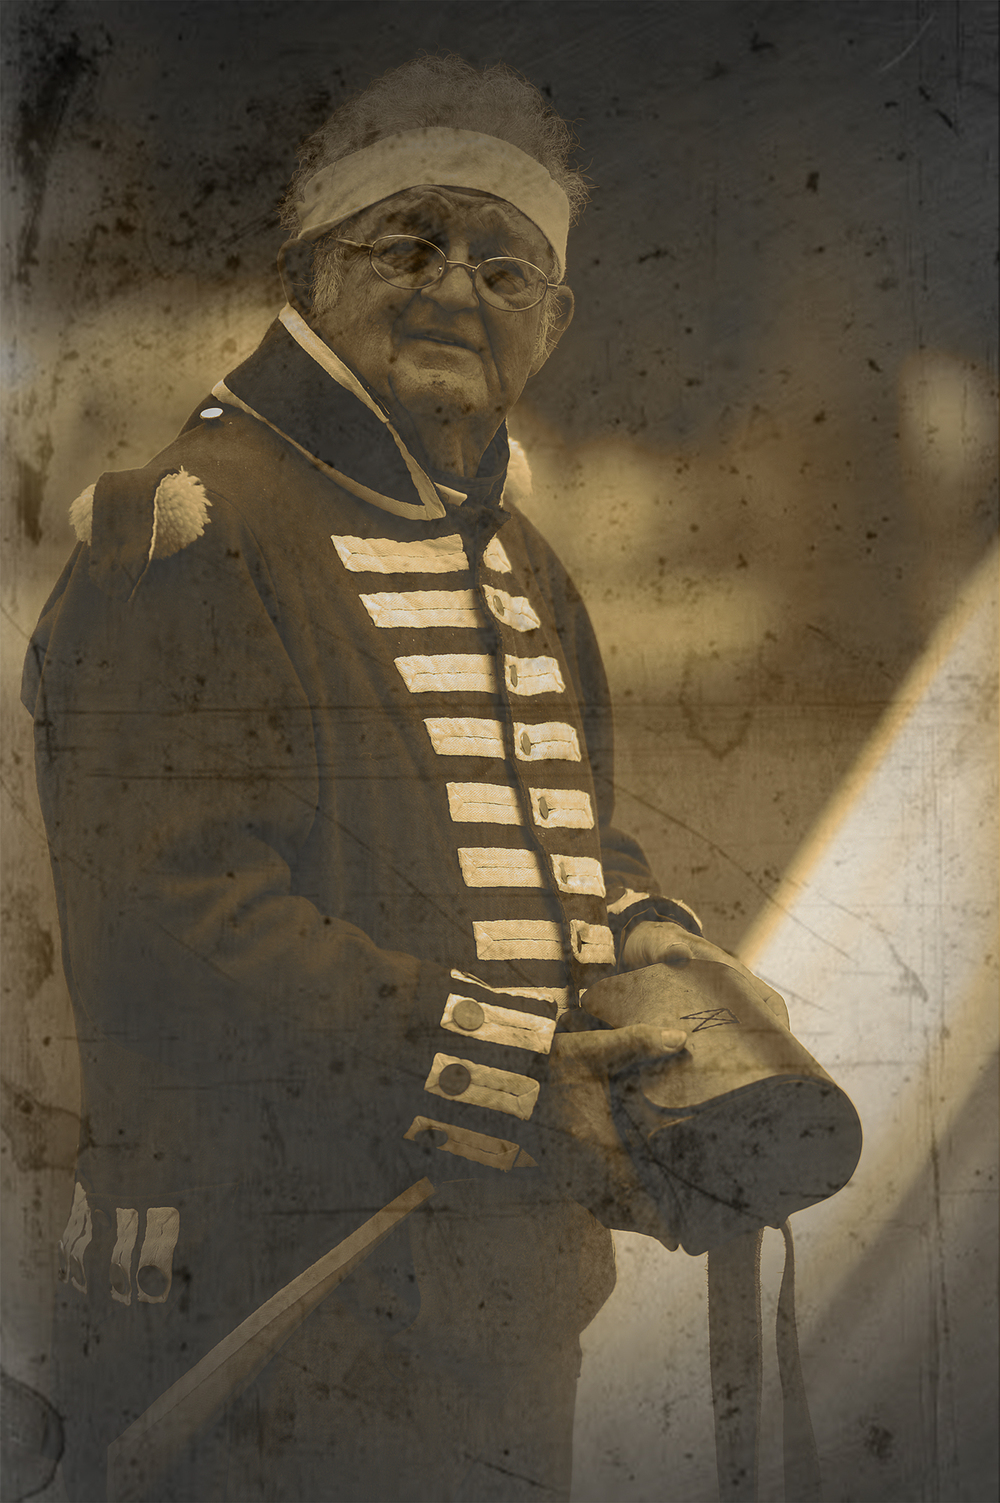 Portraits from a reenactment of the War of 1812 in Sackets Harbor, NY.